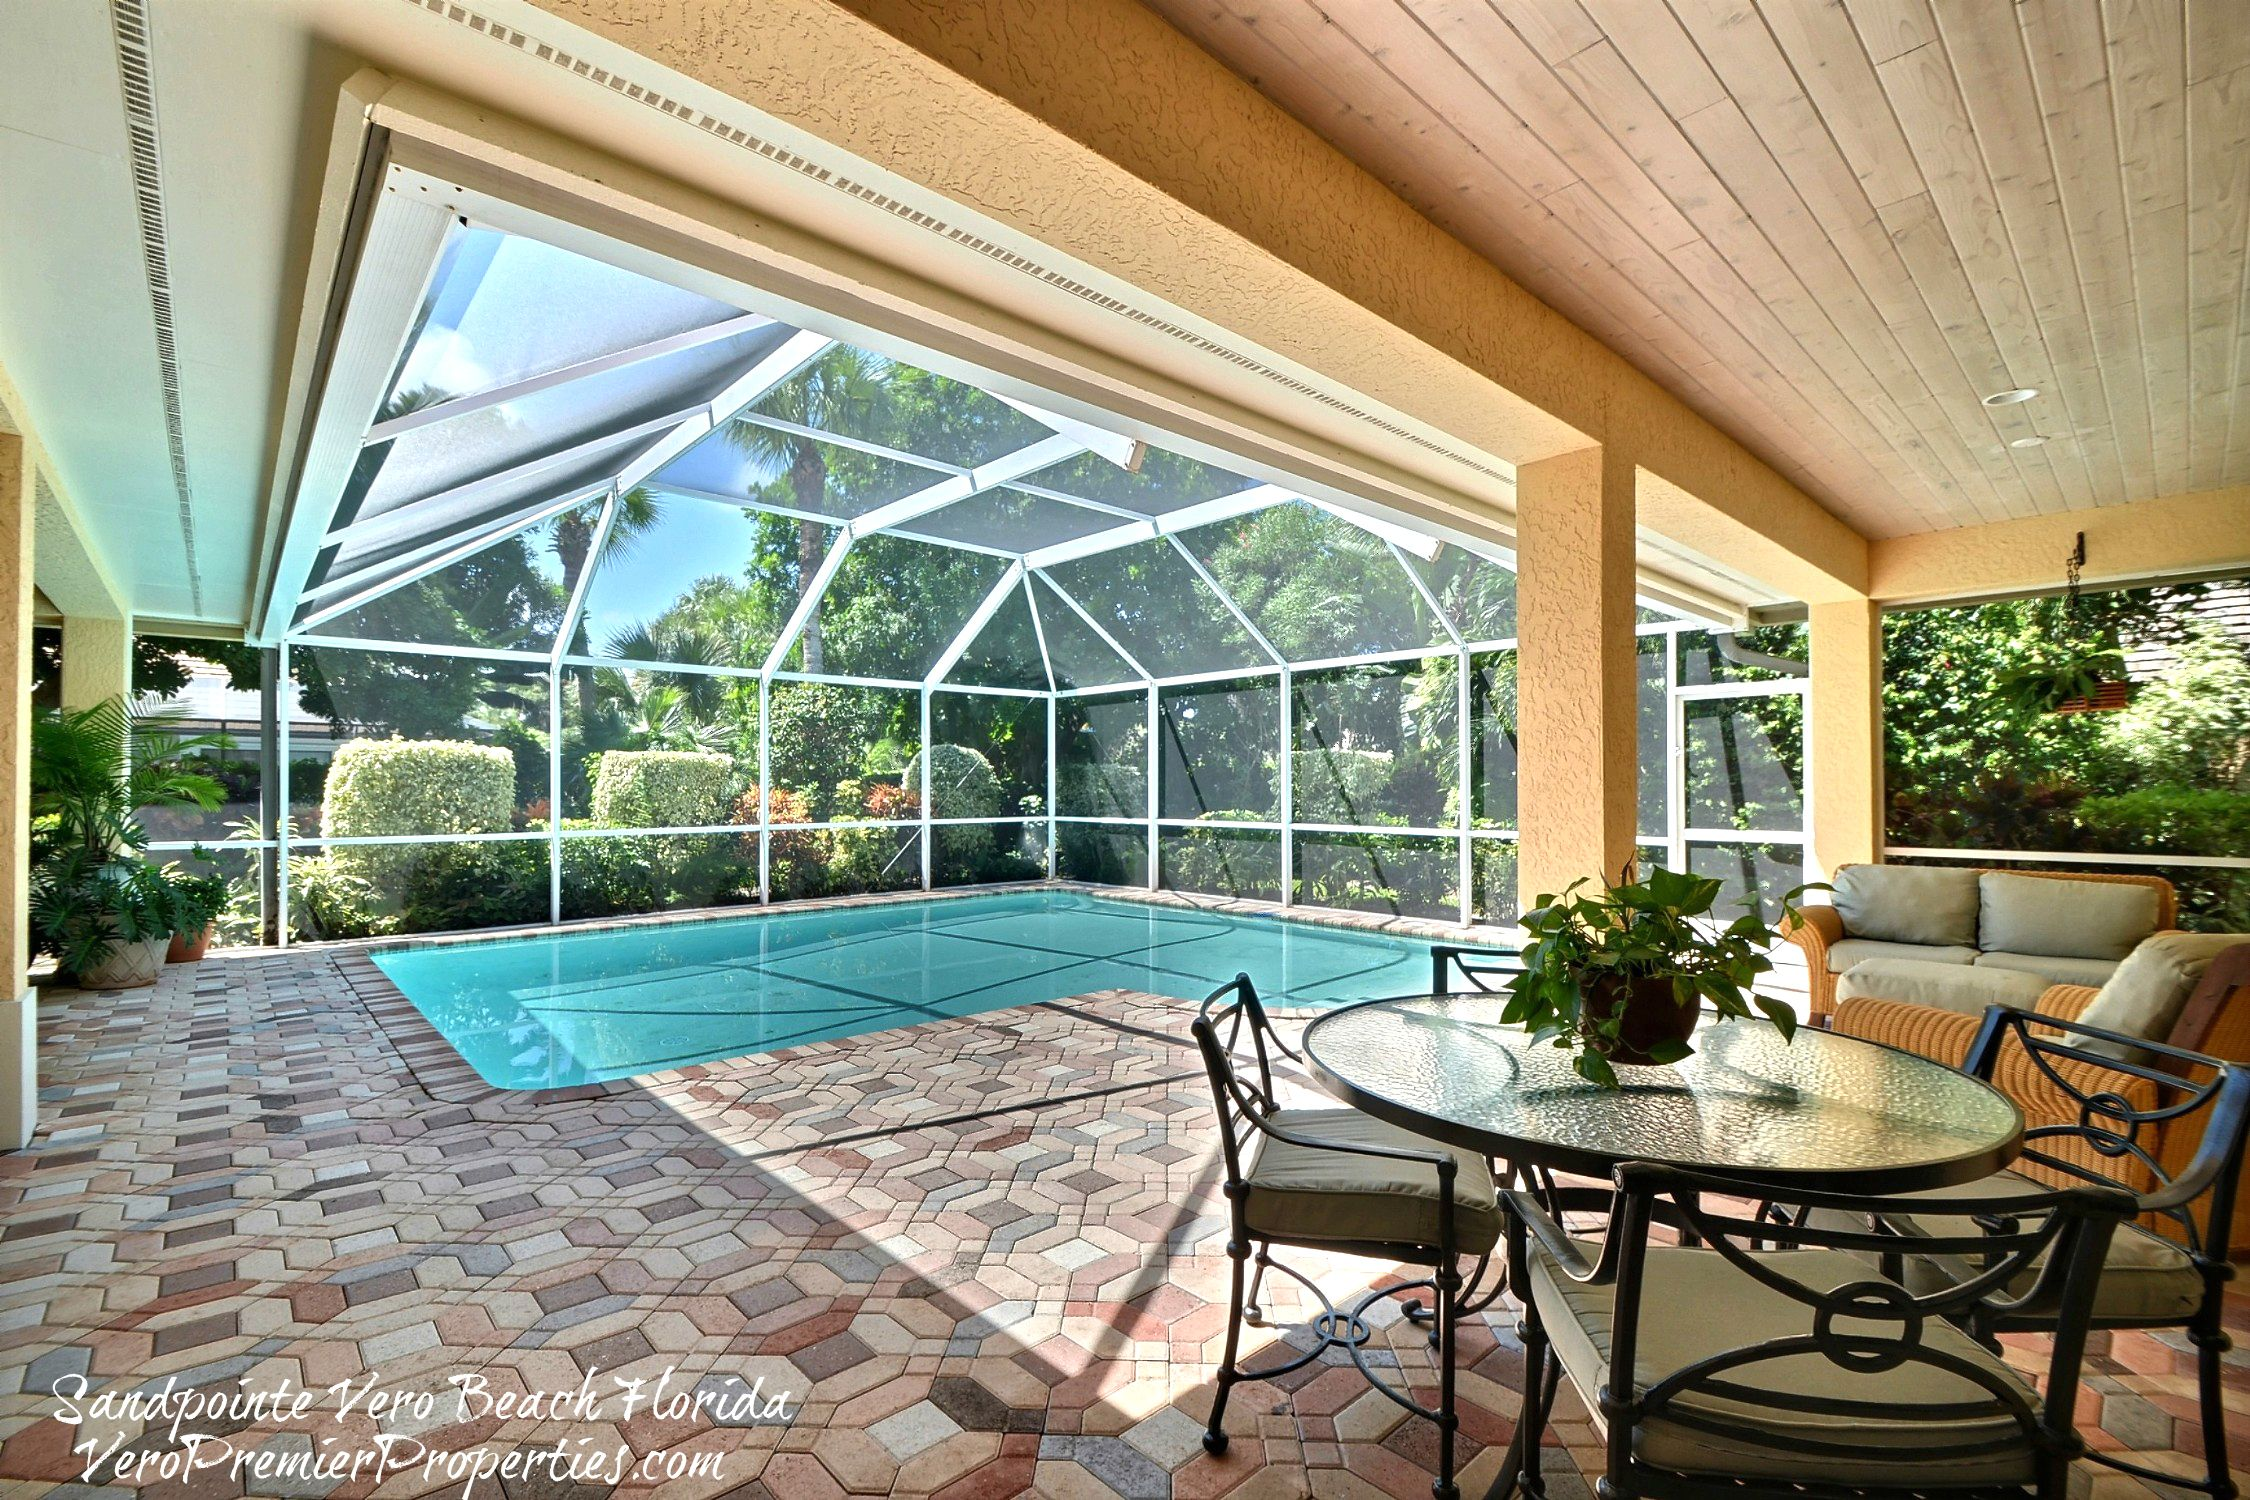 Covered Pools In Florida It is a covered area so you SANDPOINTE